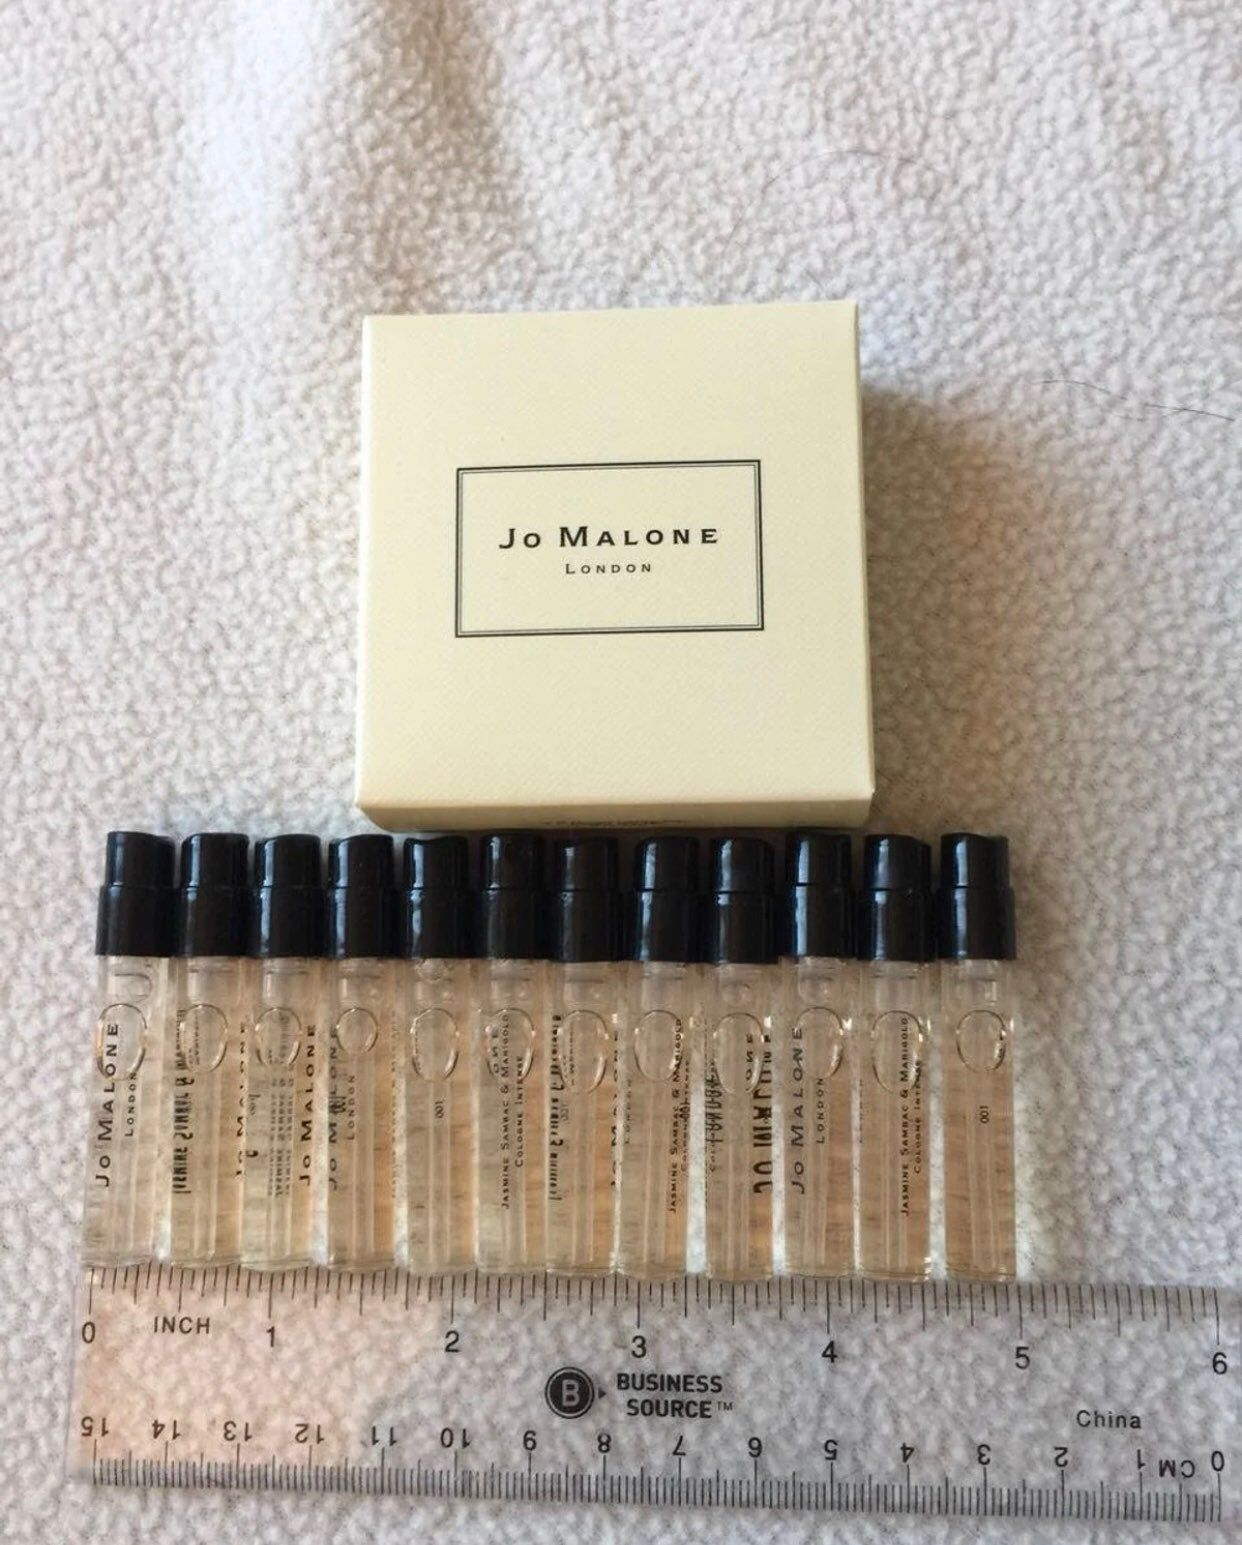 Jo Malone Set Of 14 Sample Sprays Each Vial 1 5ml 05oz 100 Authentic All Included In The Box 1 Ja Peony Blush Suede Blossom Perfume Jo Malone